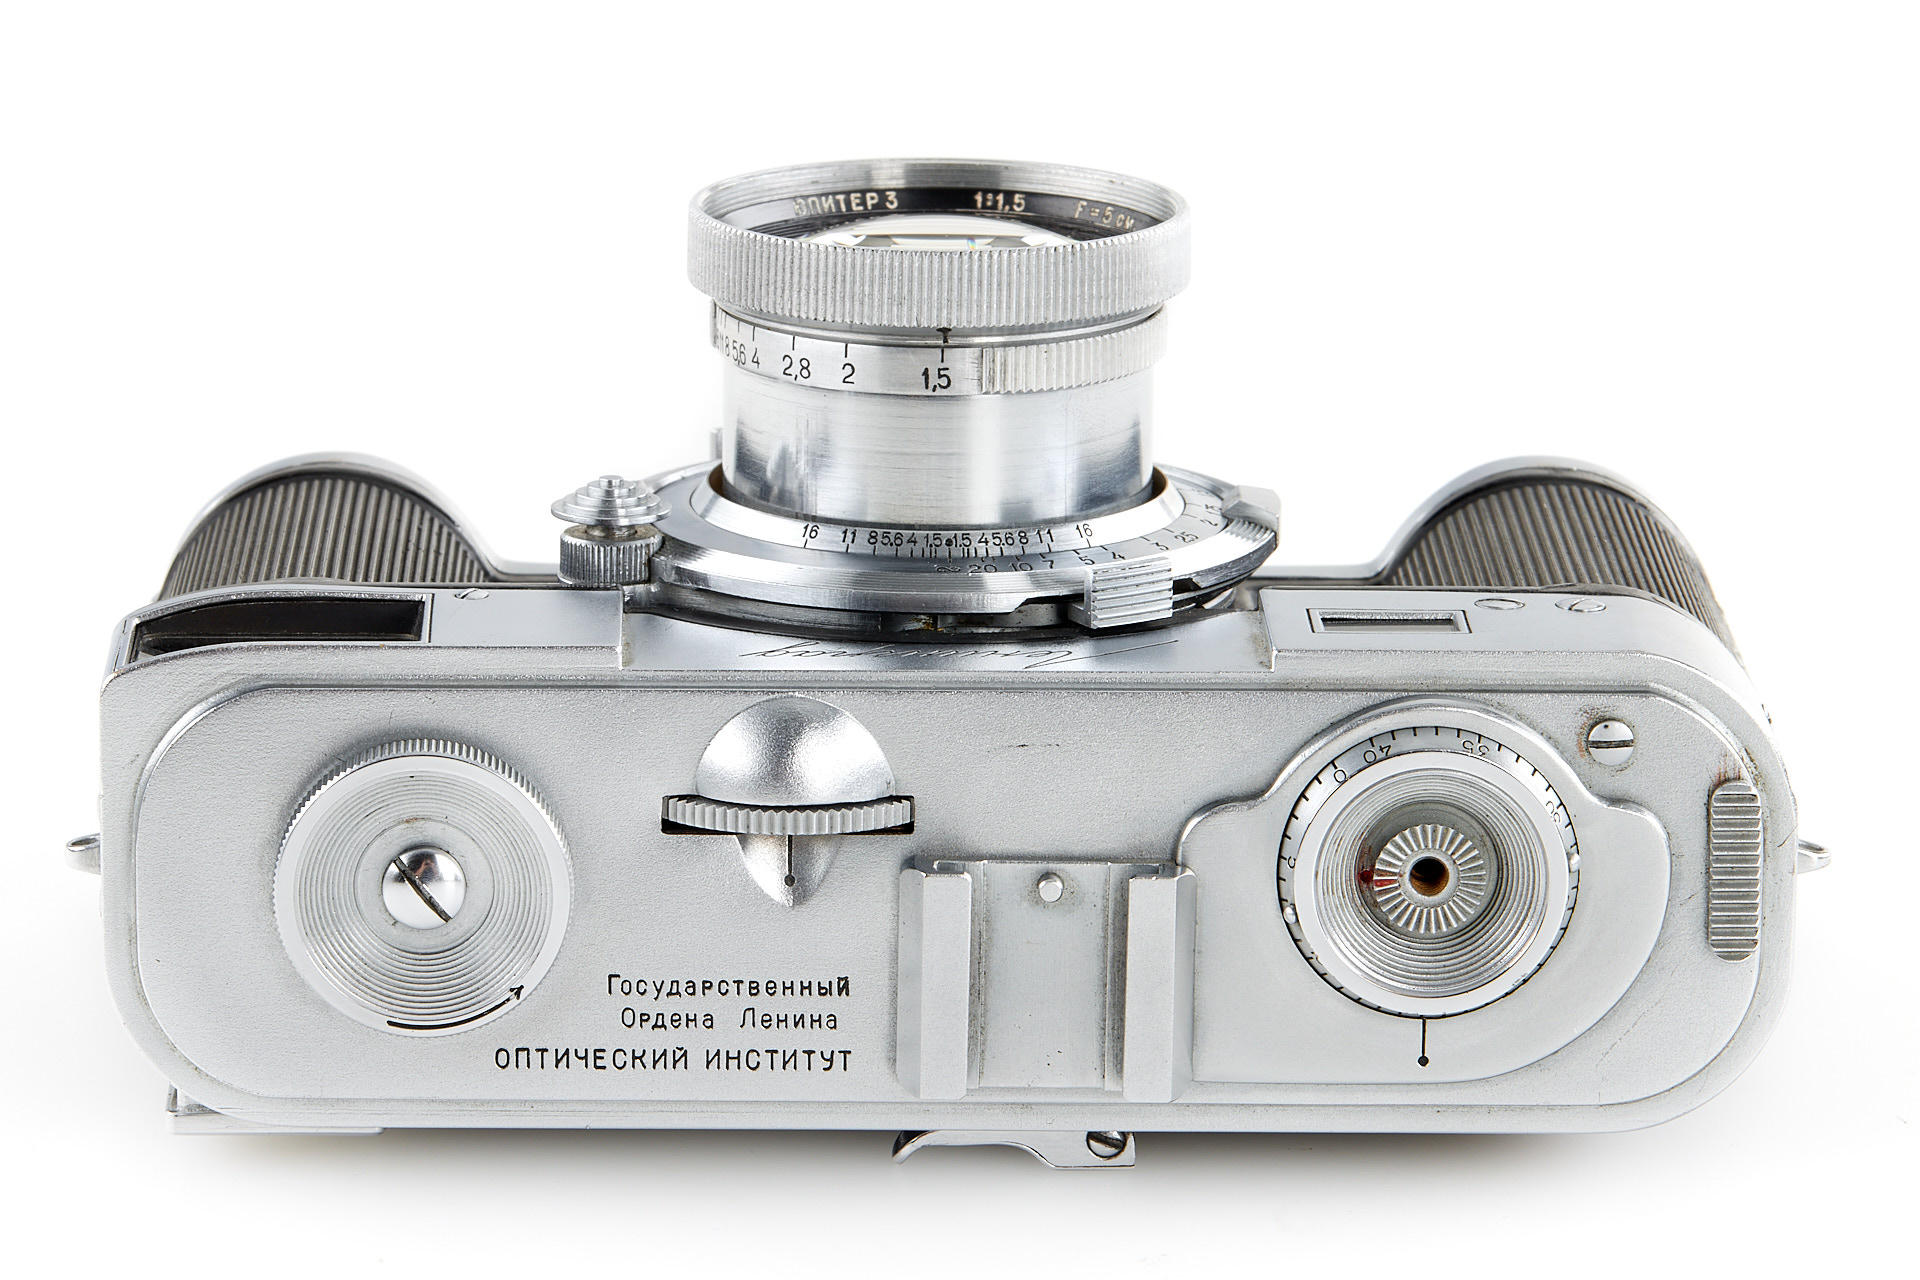 Top view of camera (Pic: Leitz Photographica Auction)